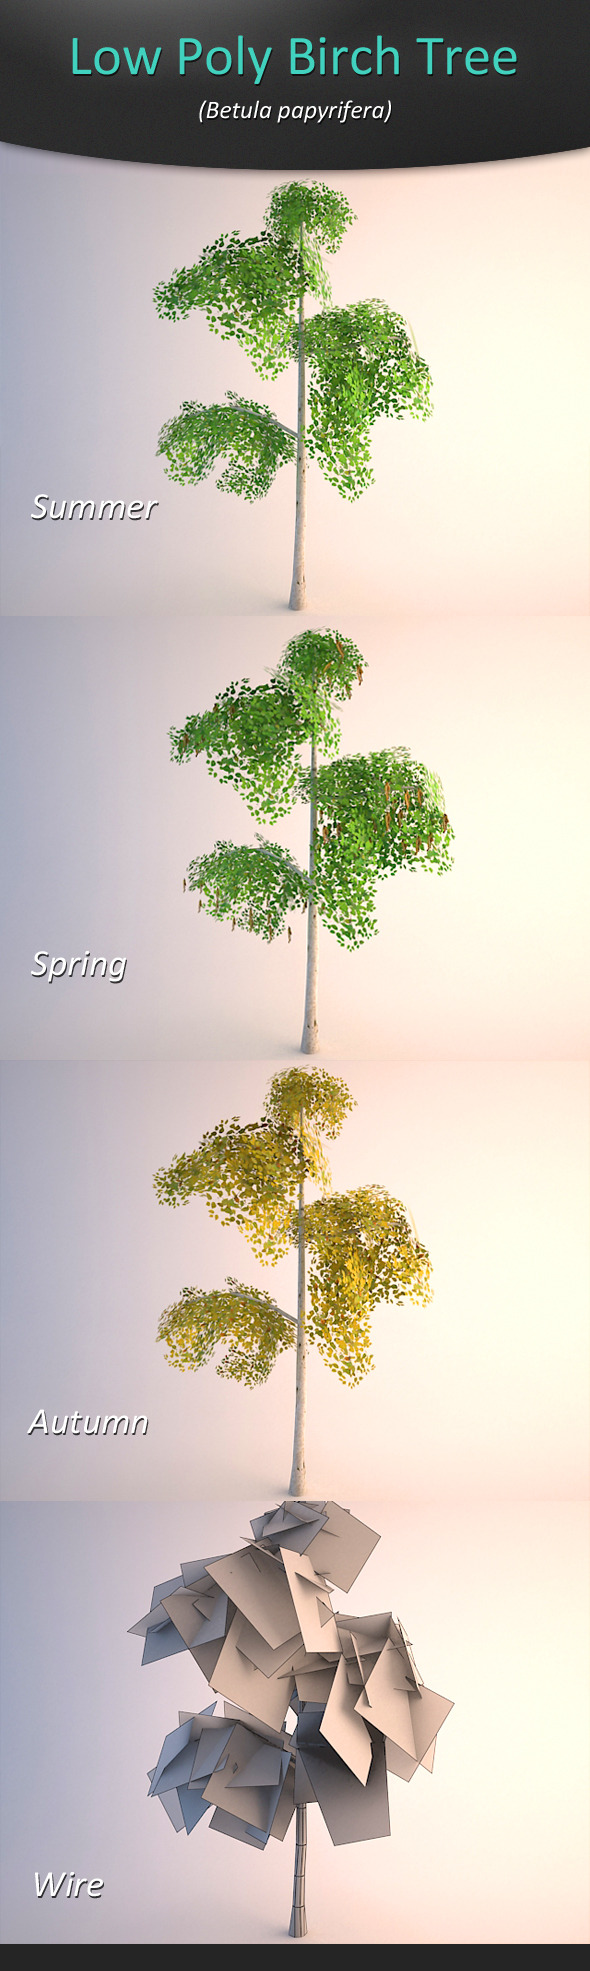 Low Poly Birch Tree - 3DOcean Item for Sale